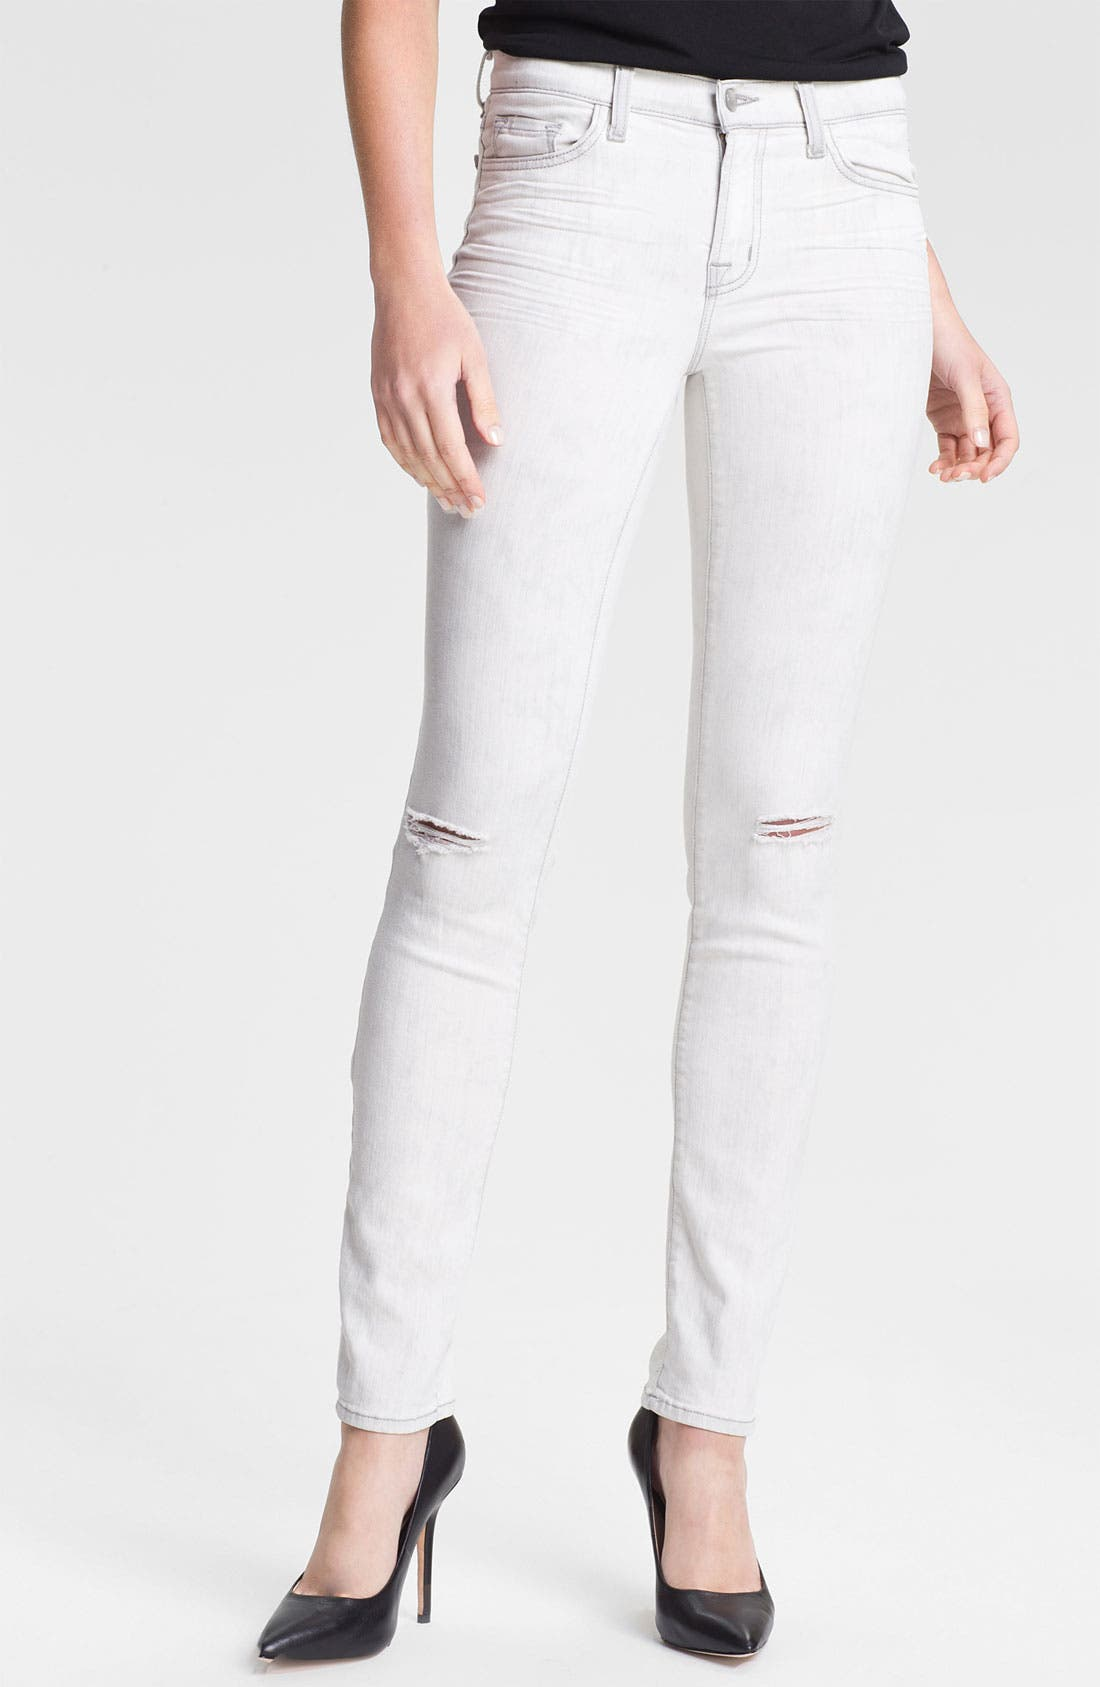 Alternate Image 1 Selected - J Brand 'Rail' Destroyed Skinny Jeans (Commotion)